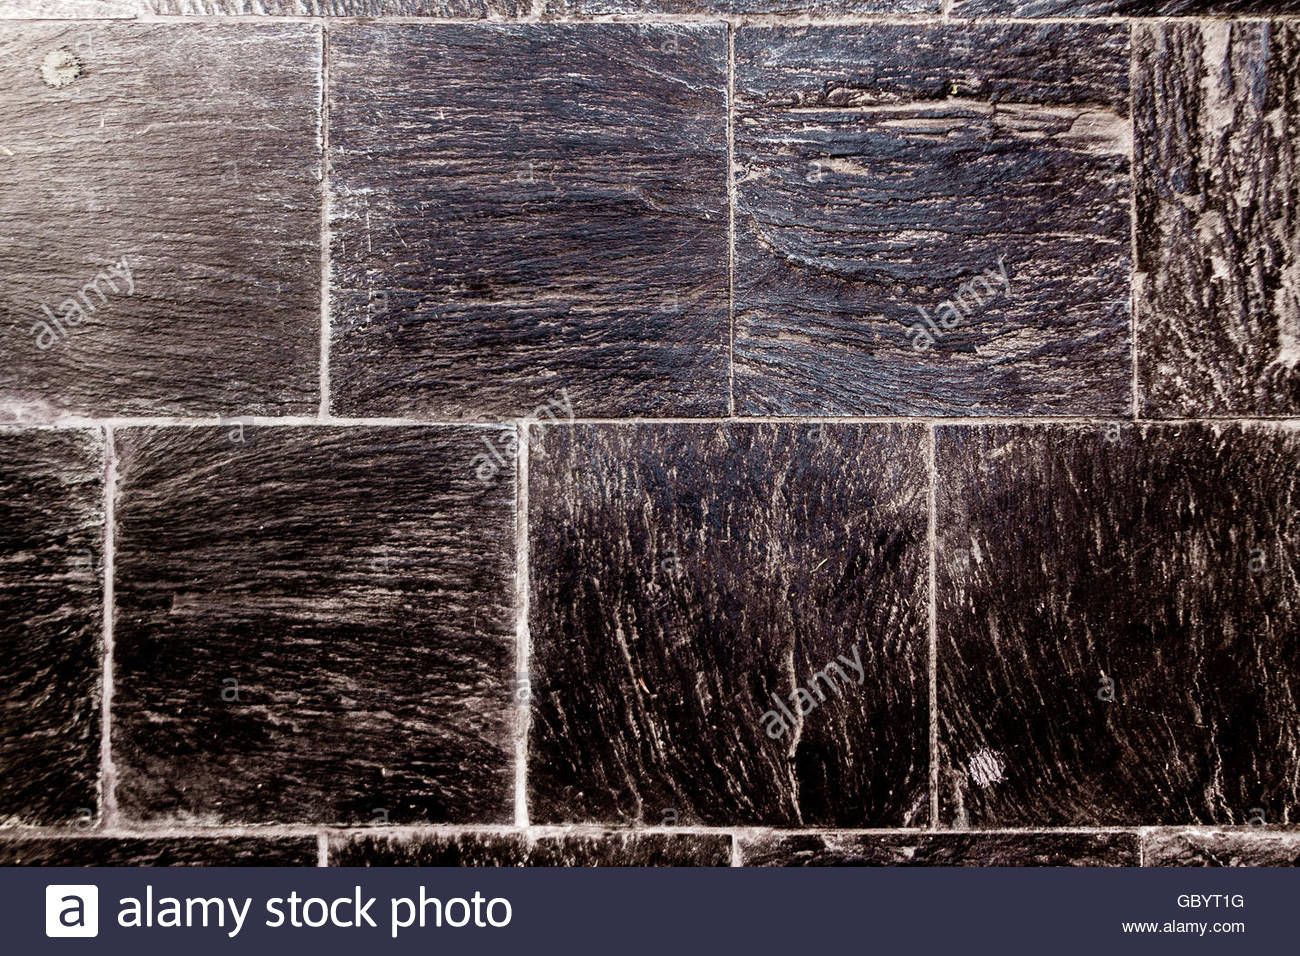 Rough Tile Floor With Black Slate And Joint Marks